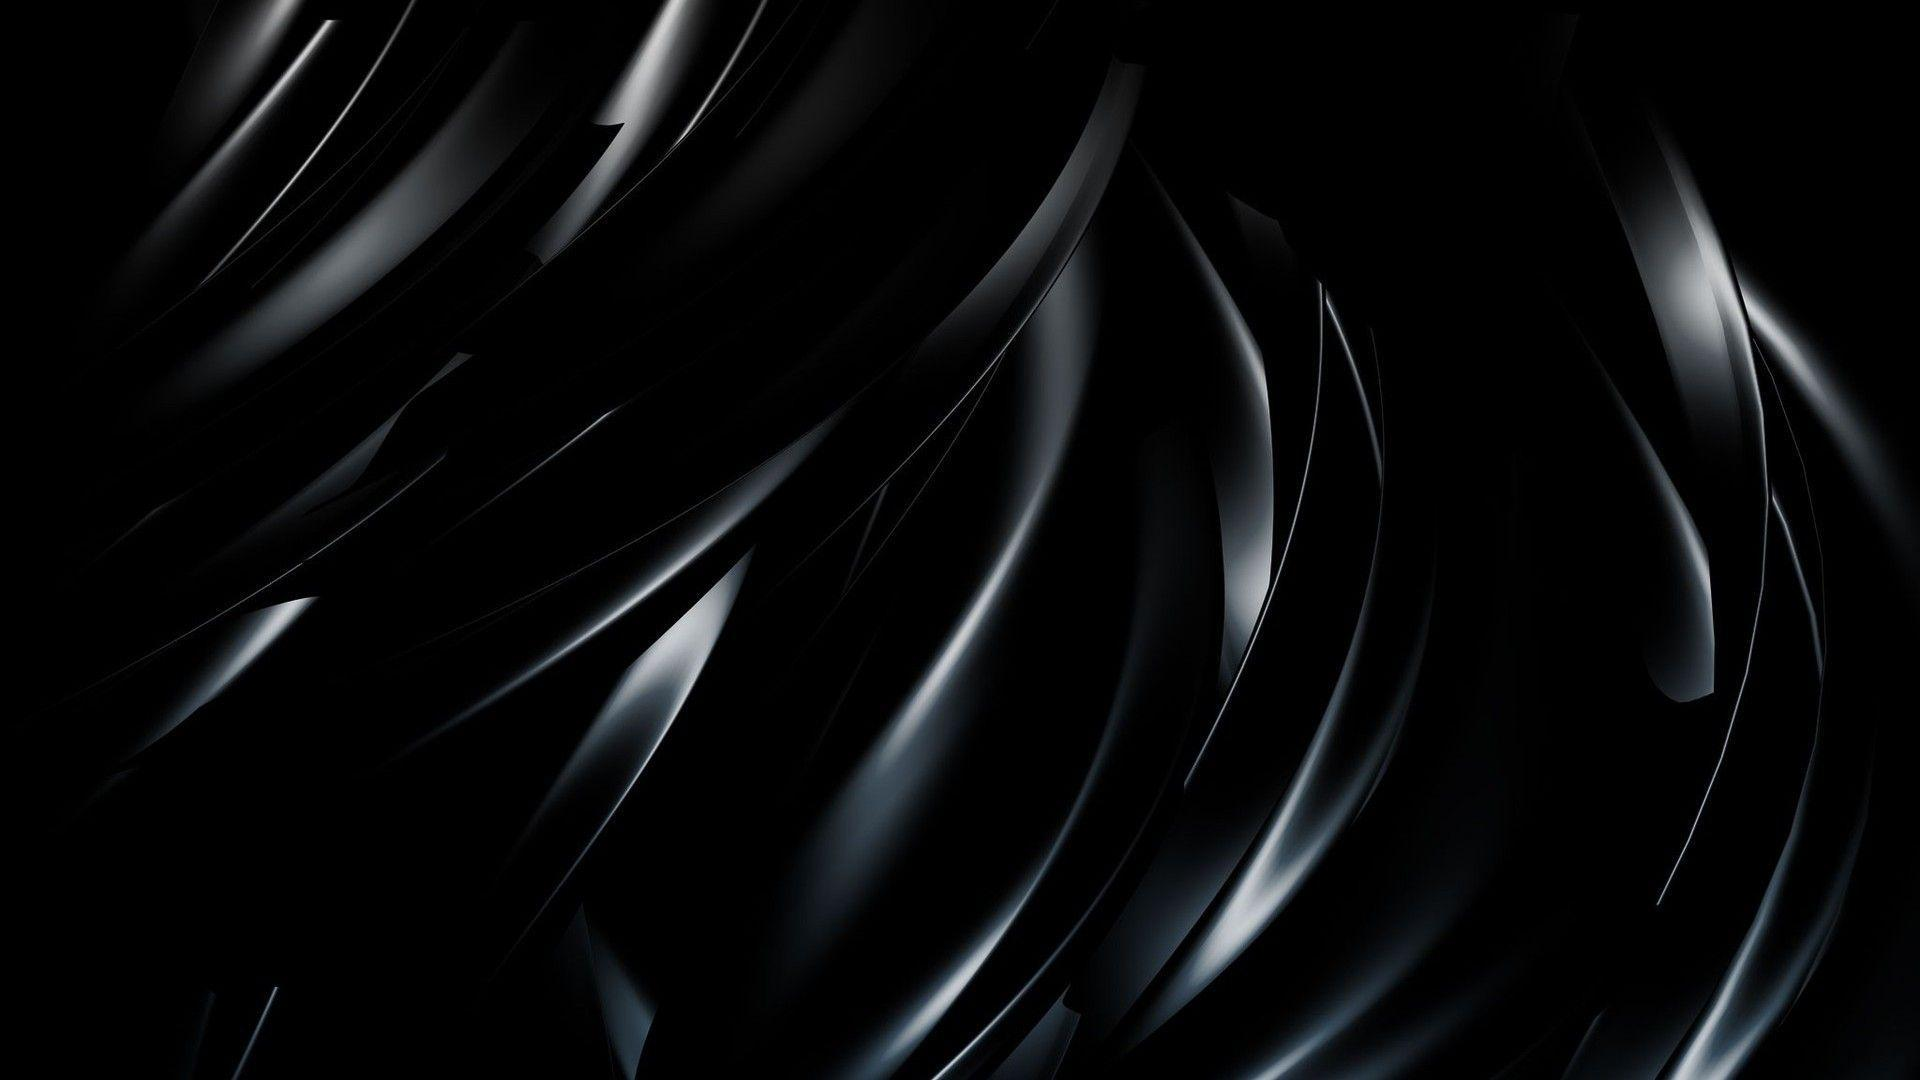 Black Abstract Wallpaper 1920X1080 Hd 1080P 11 HD Wallpapers